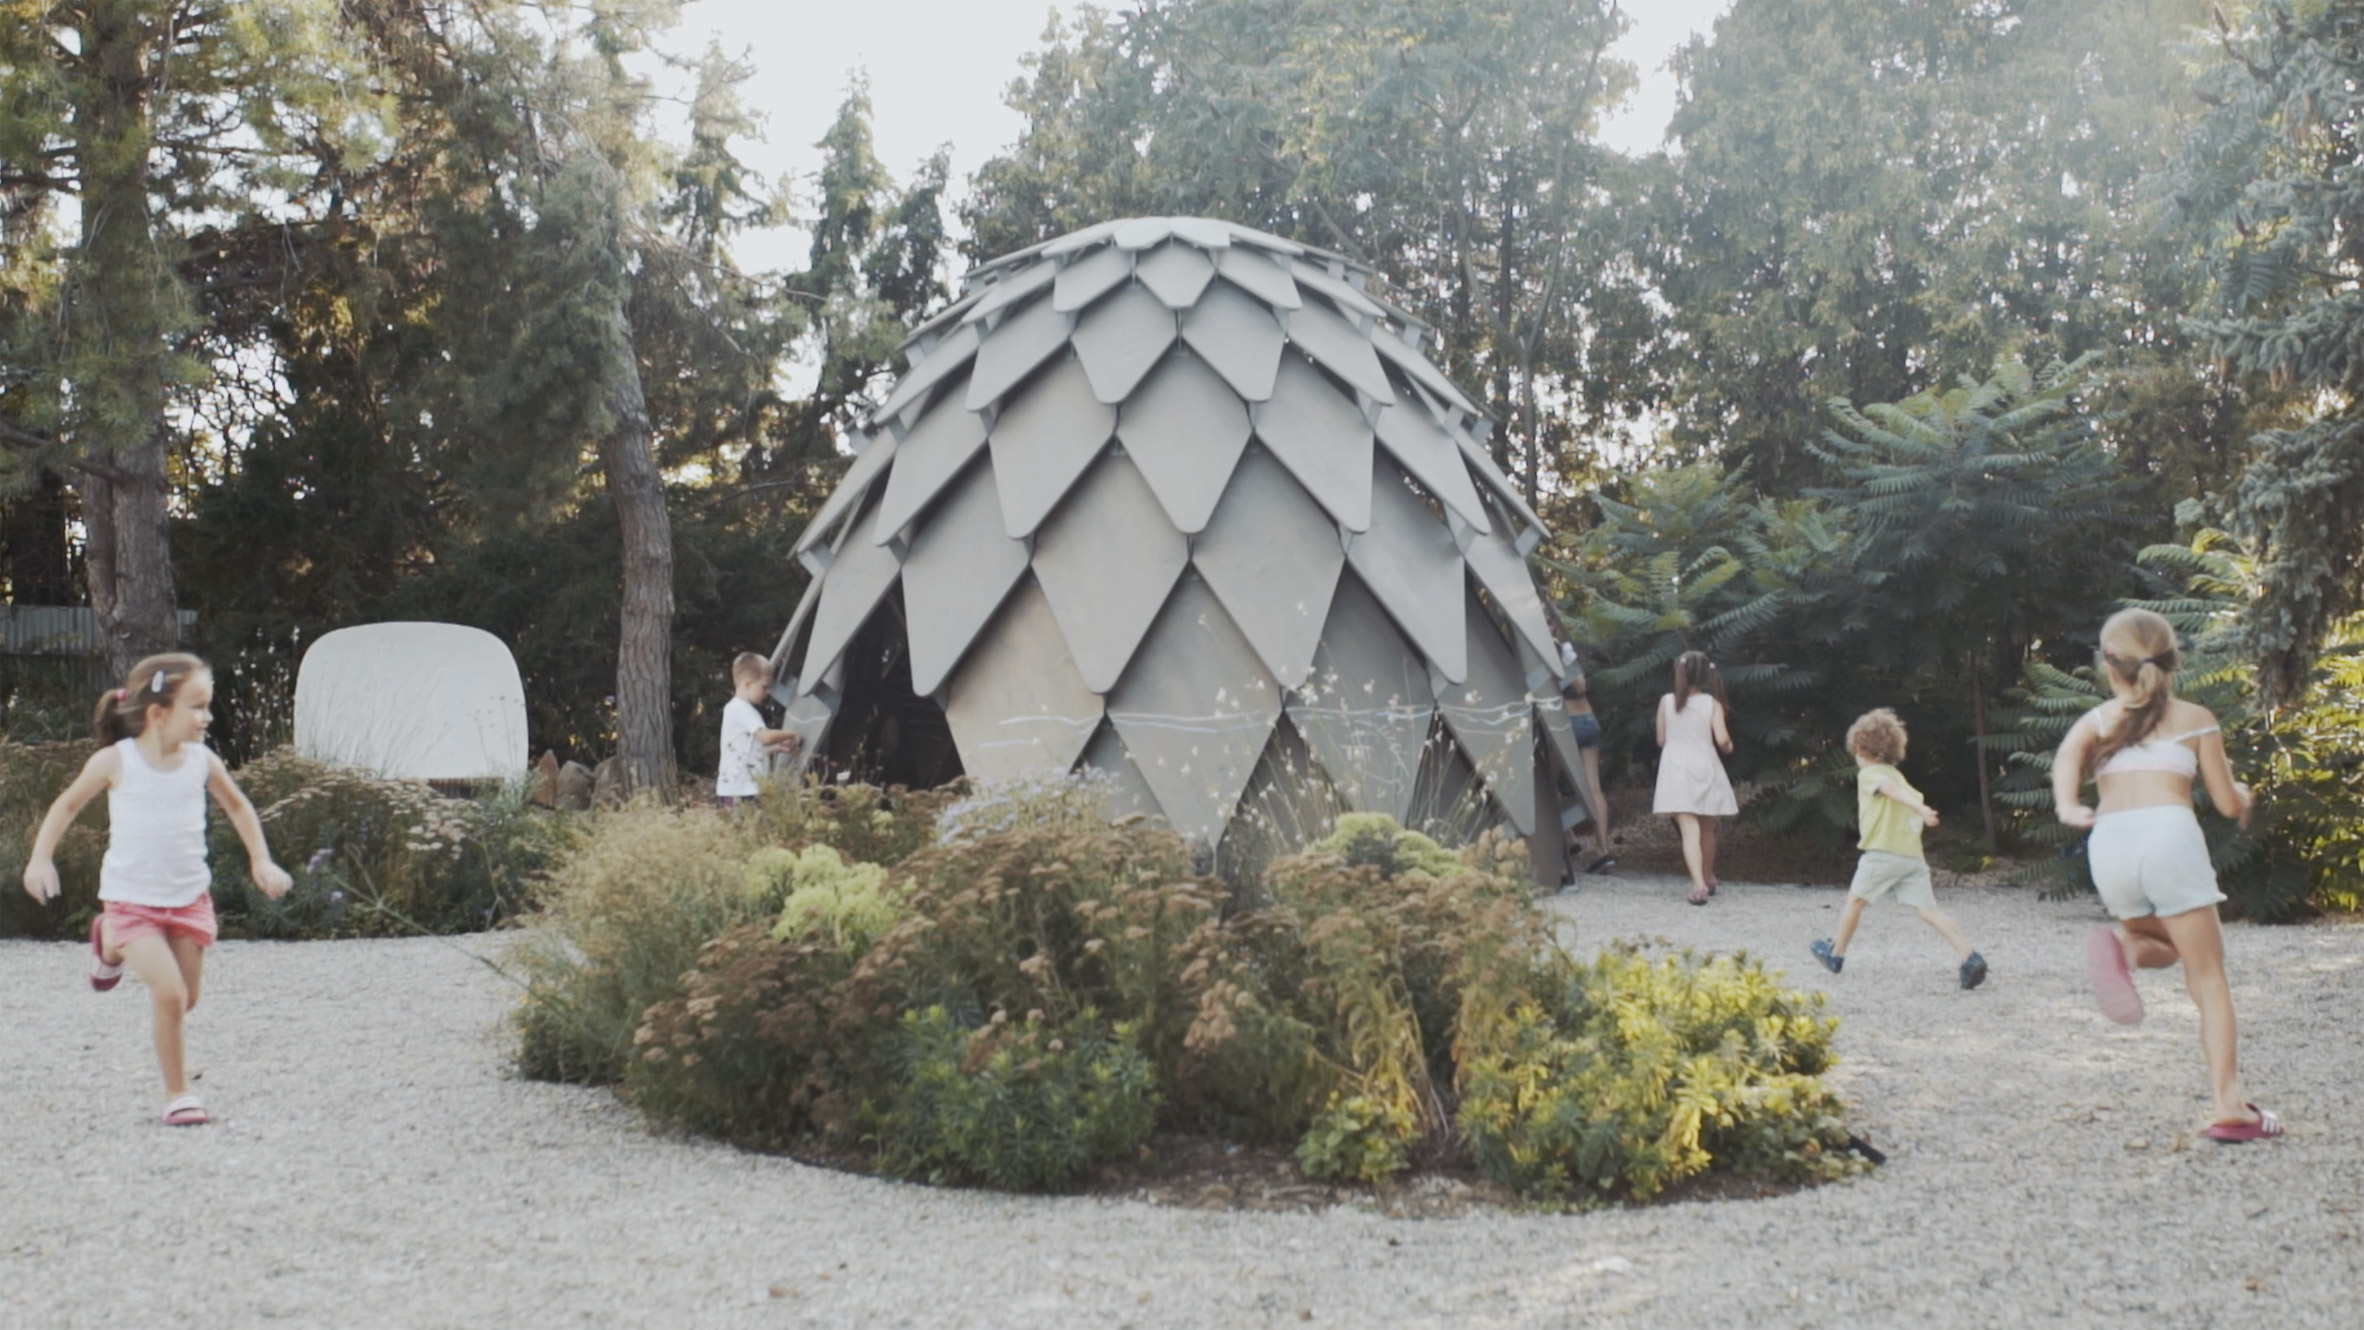 Pinecone mobile gazebo by mmcité1 and Atelier SAD